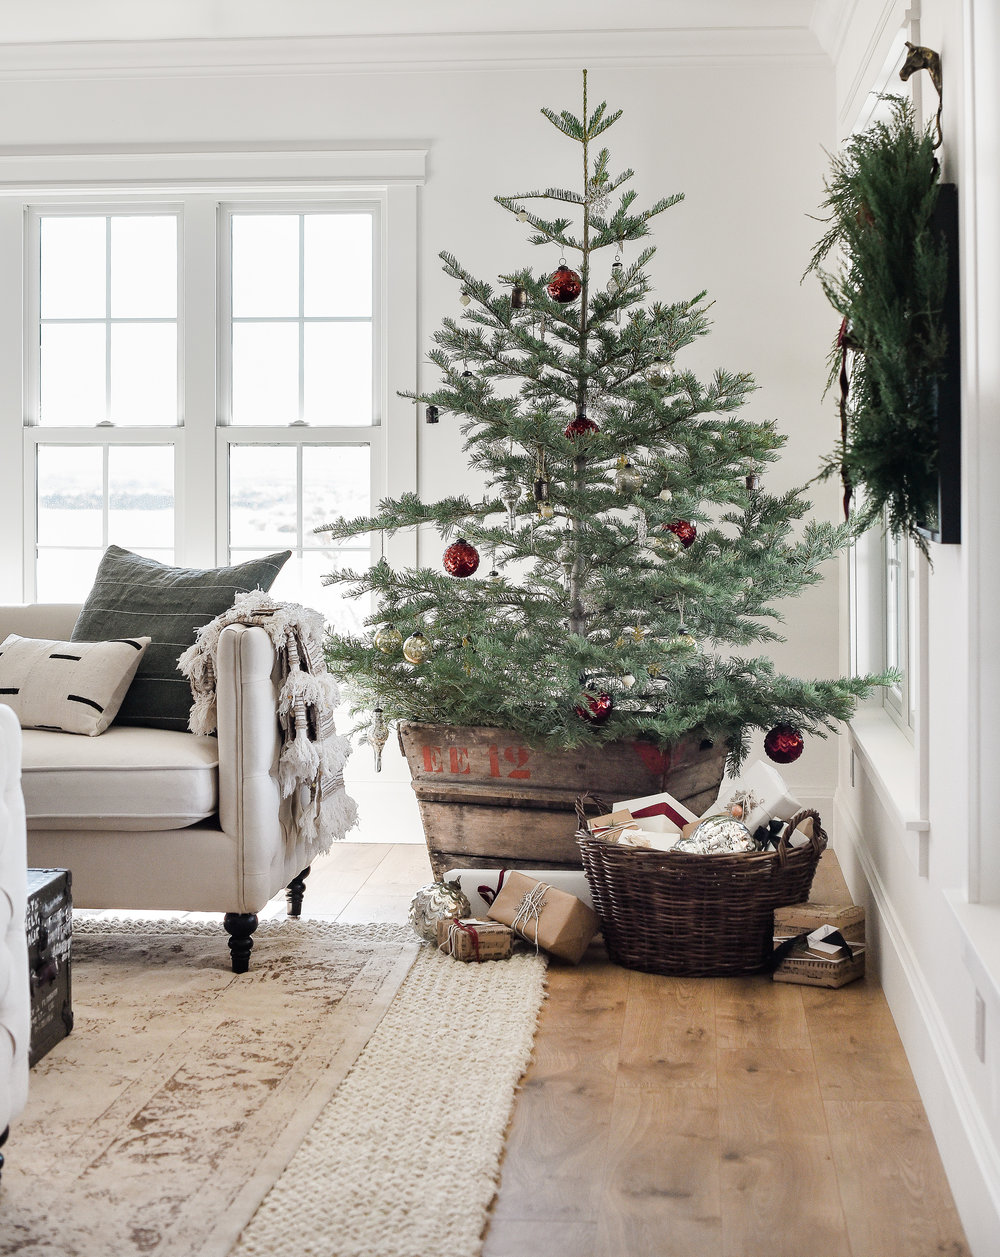 Vintage Christmas tree decorating ideas boxwoodavenue.co,